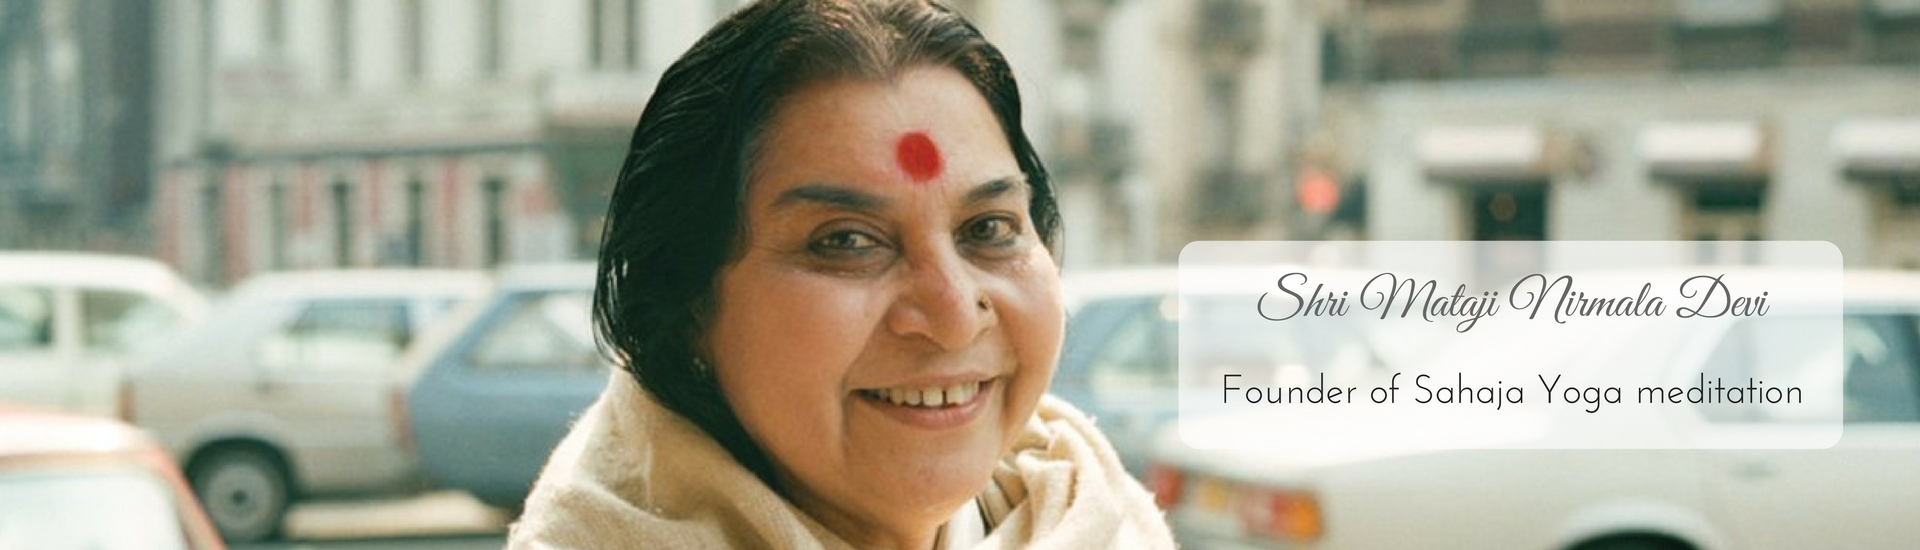 shri-mataji-web-photo